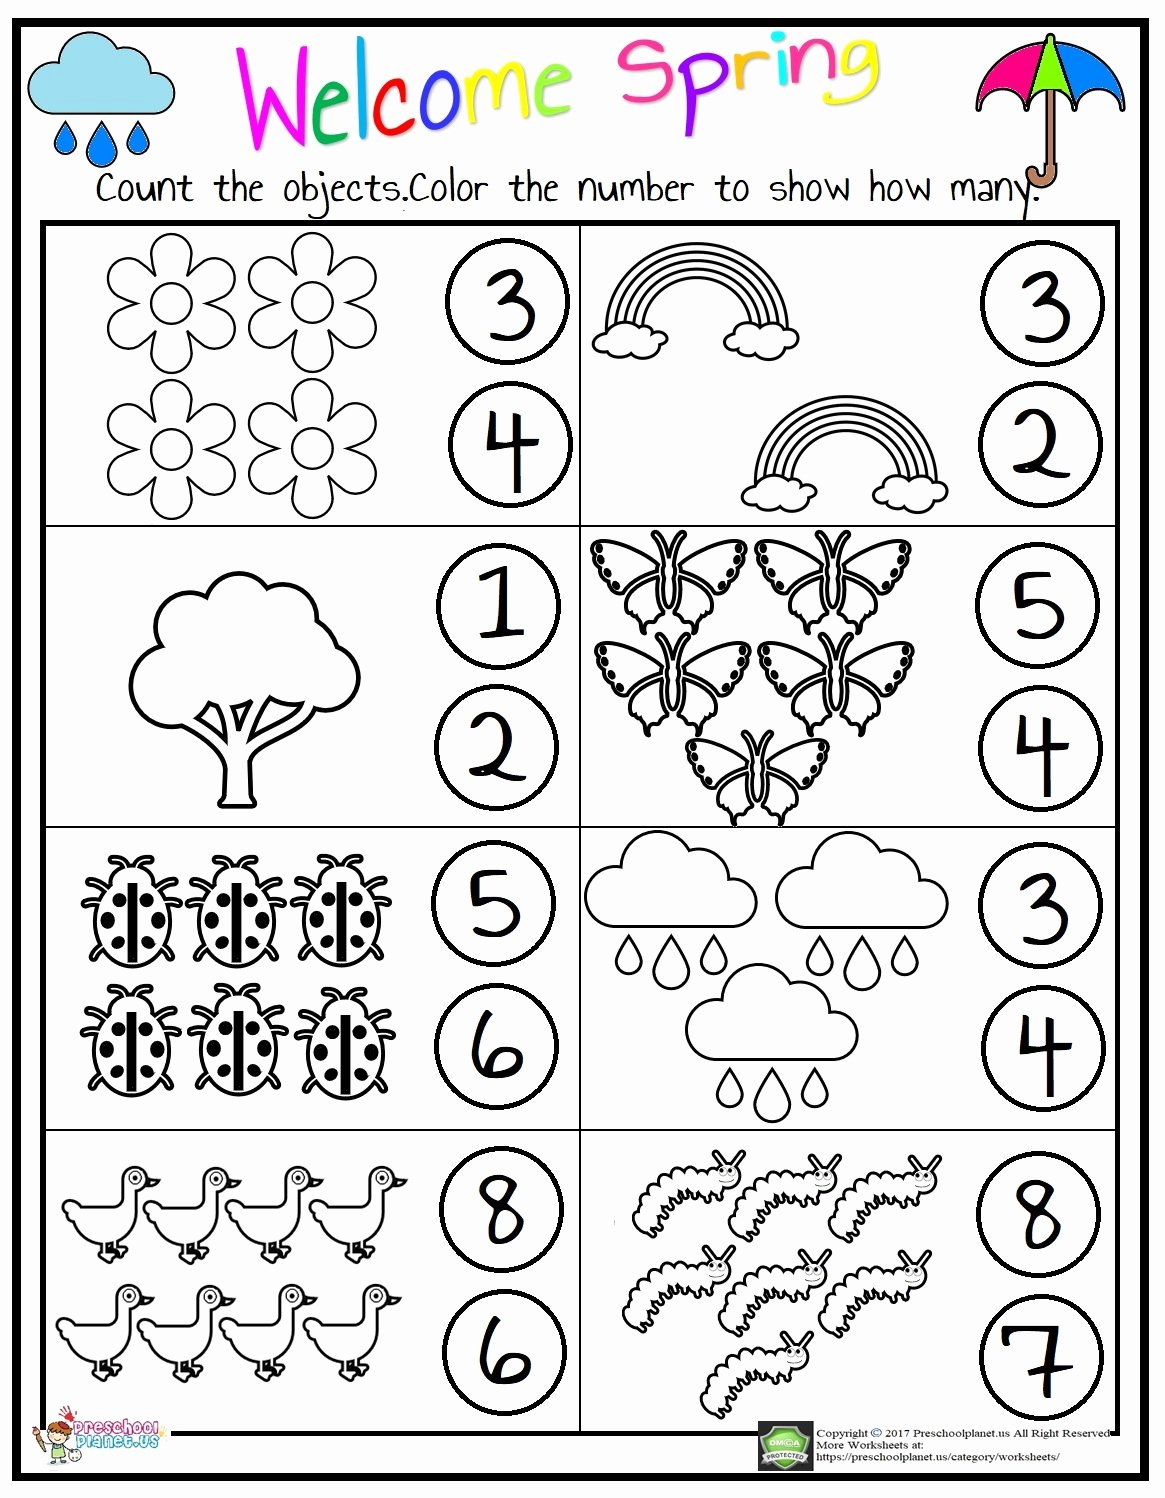 Counting Worksheets for Preschoolers Inspirational Counting Worksheet – Preschoolplanet